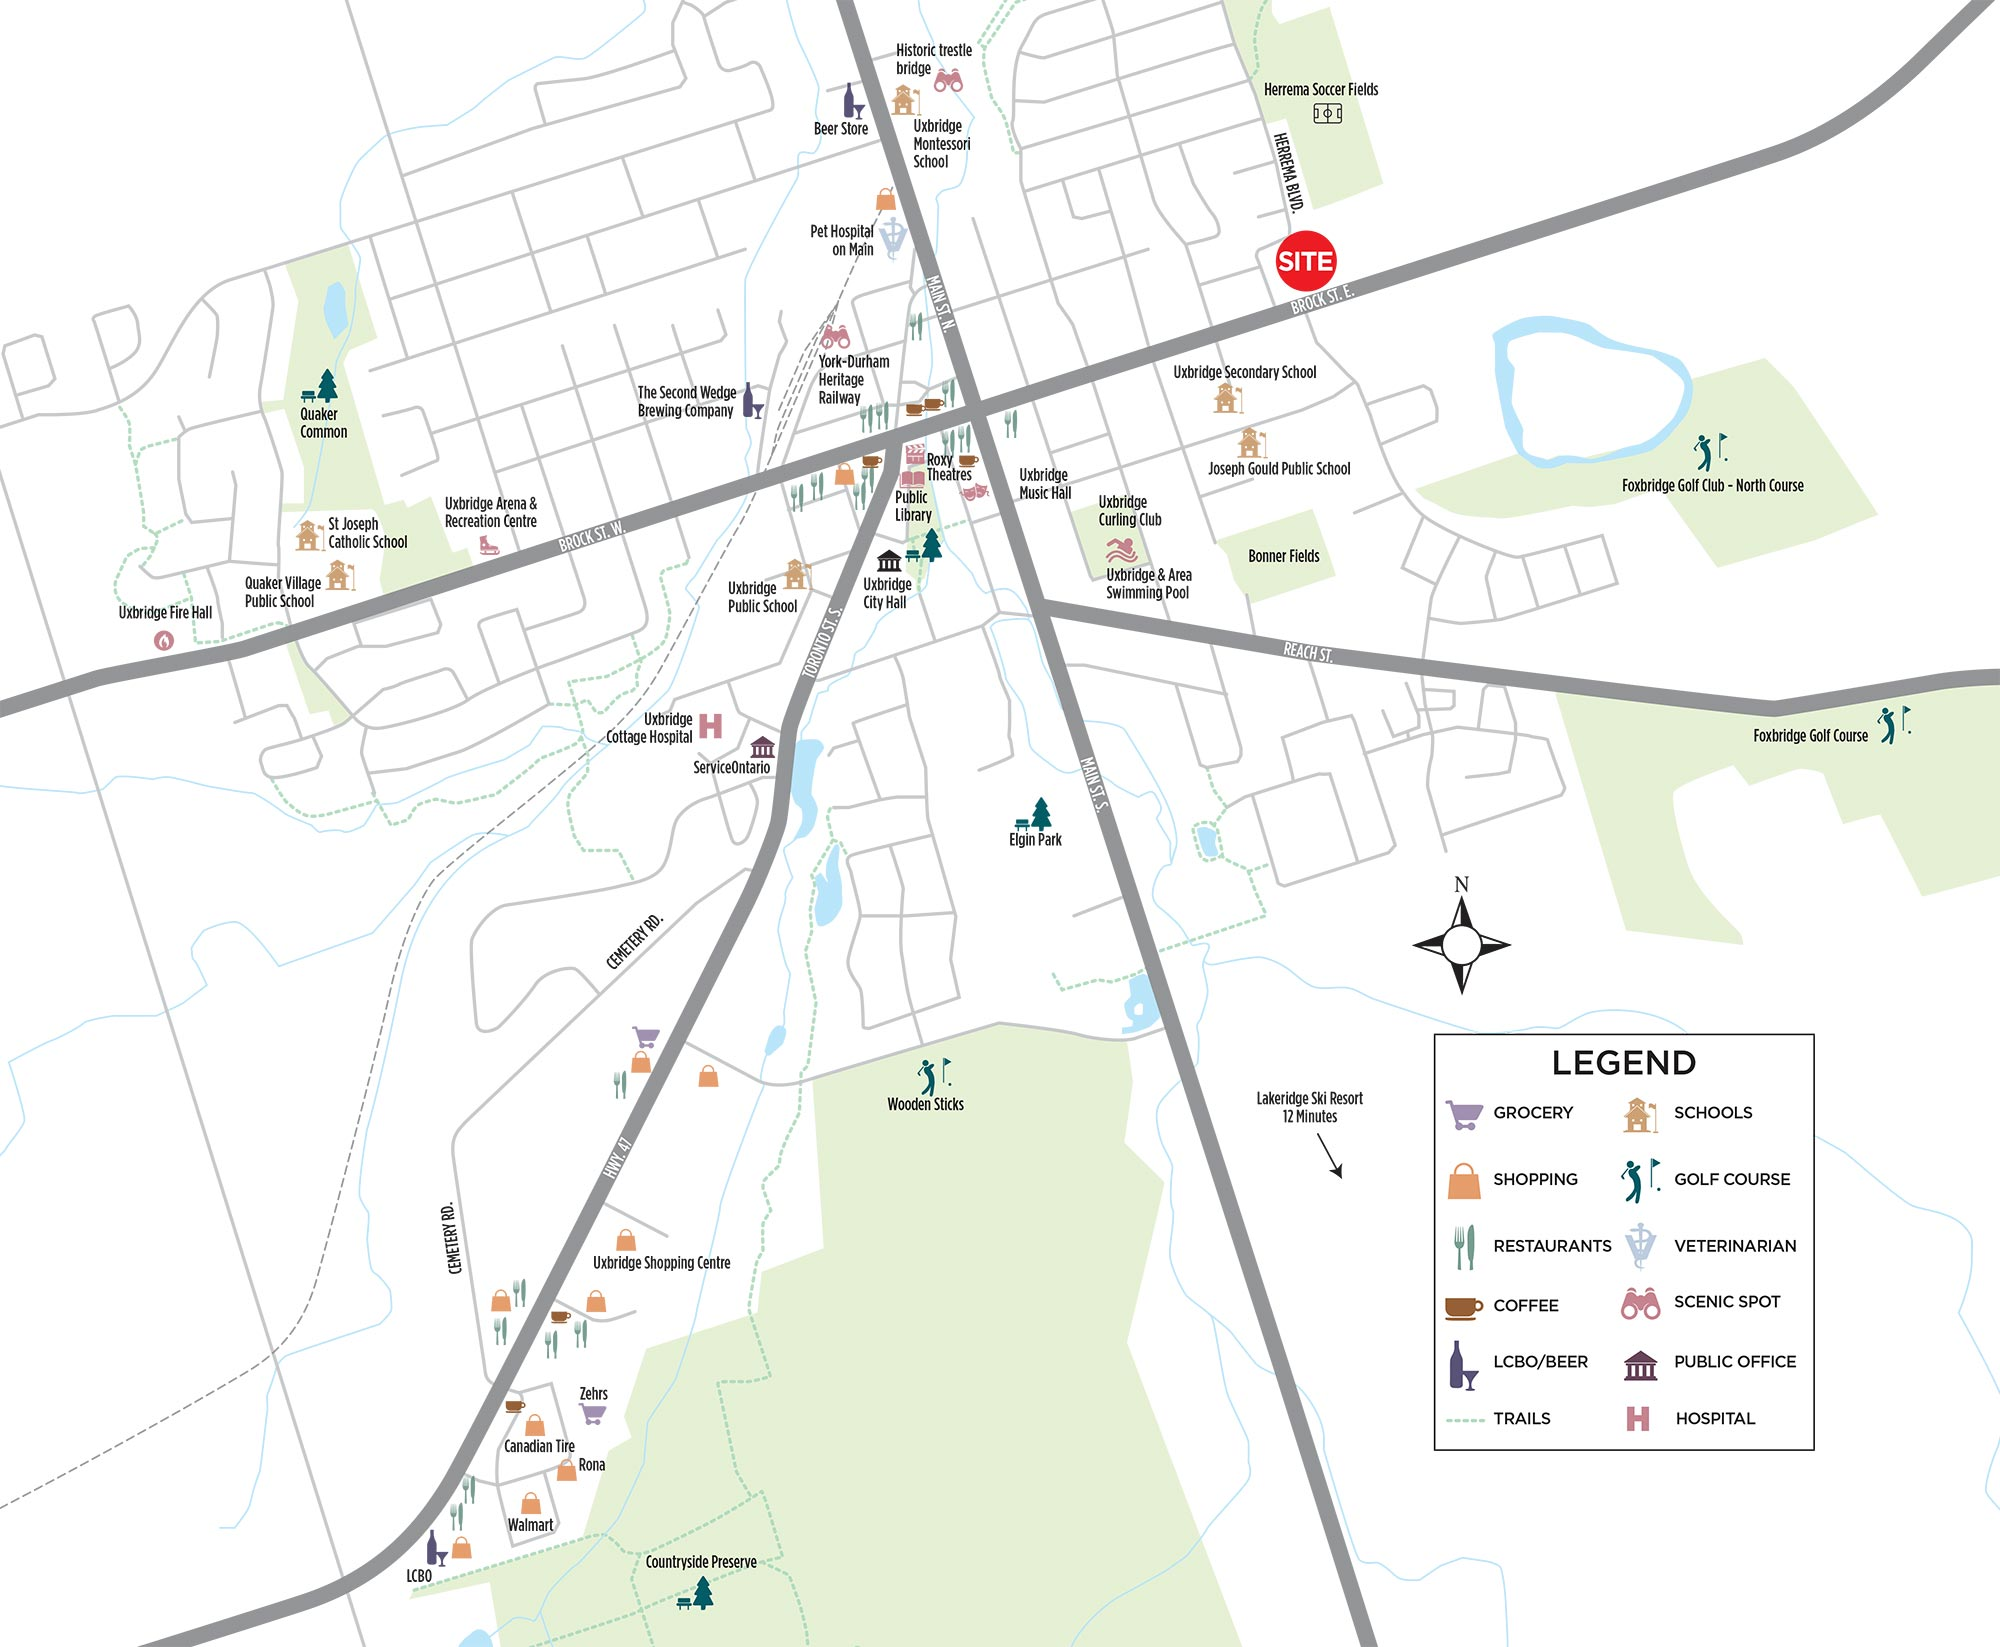 Town of Uxbridge Amenity Map